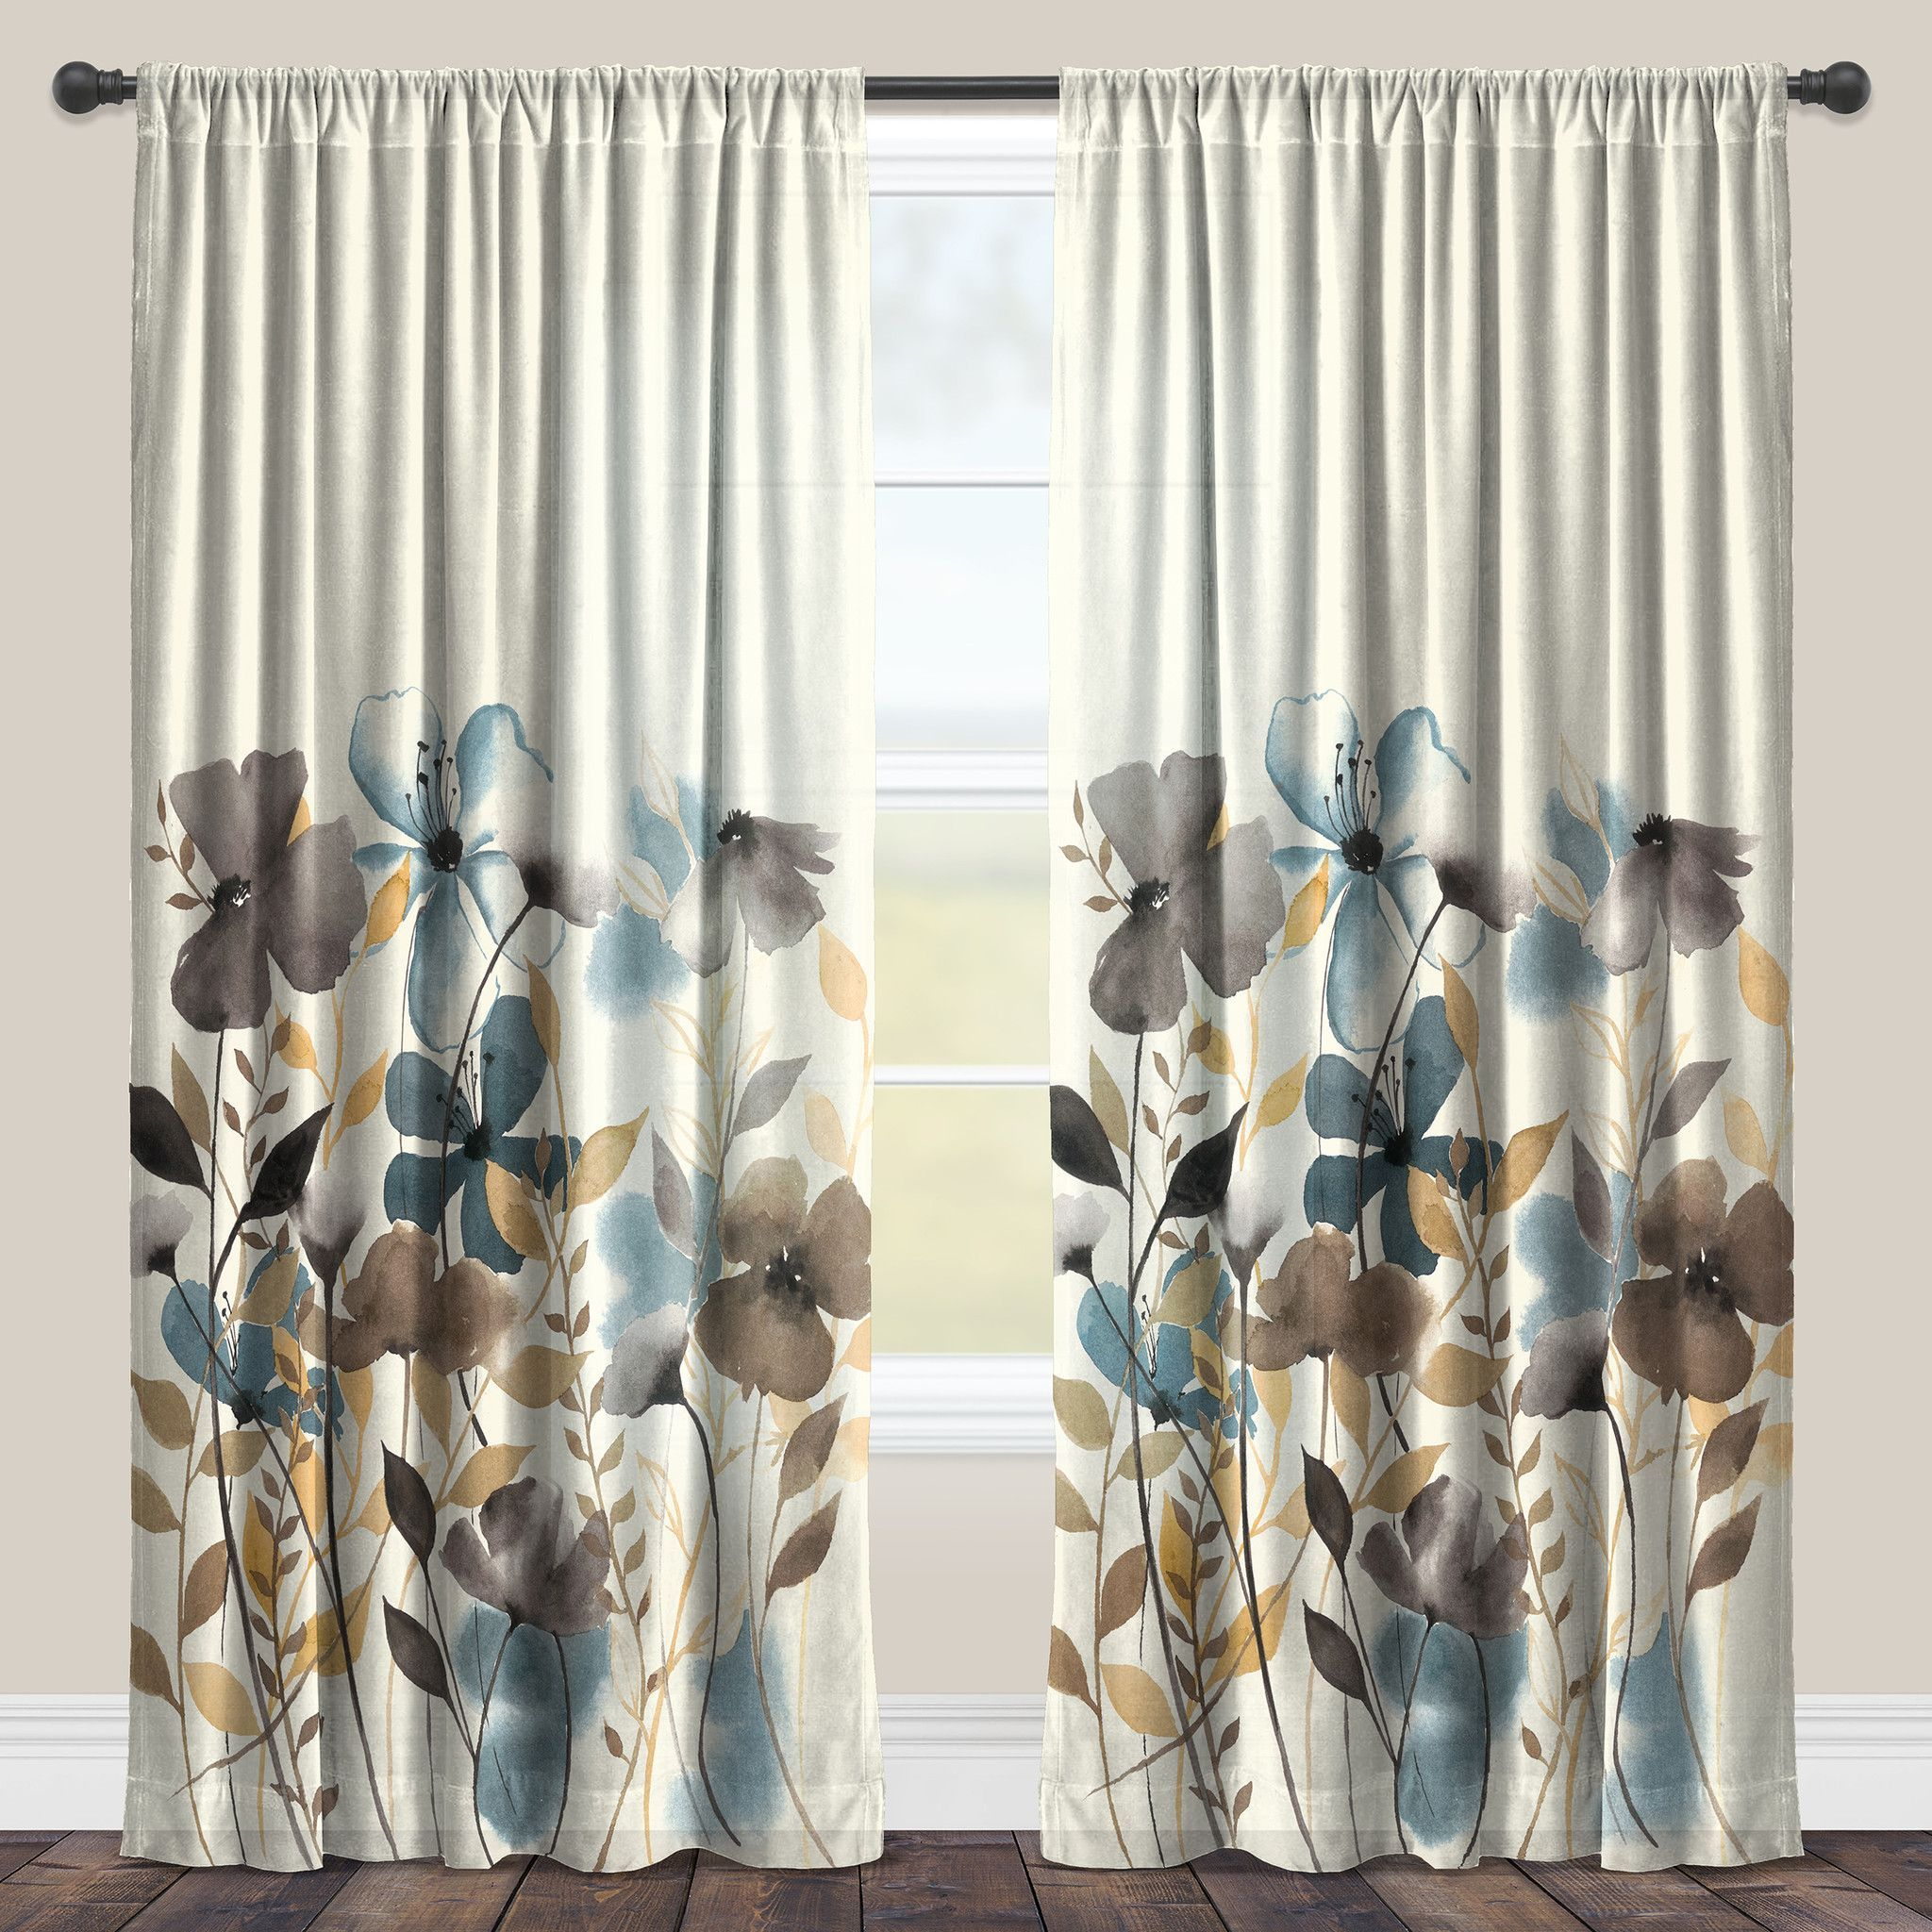 BEIGE LEAF PRINTED SILK VALANCE PANELS ROD POCKET WINDOW CURTAIN TREATMENT NADA